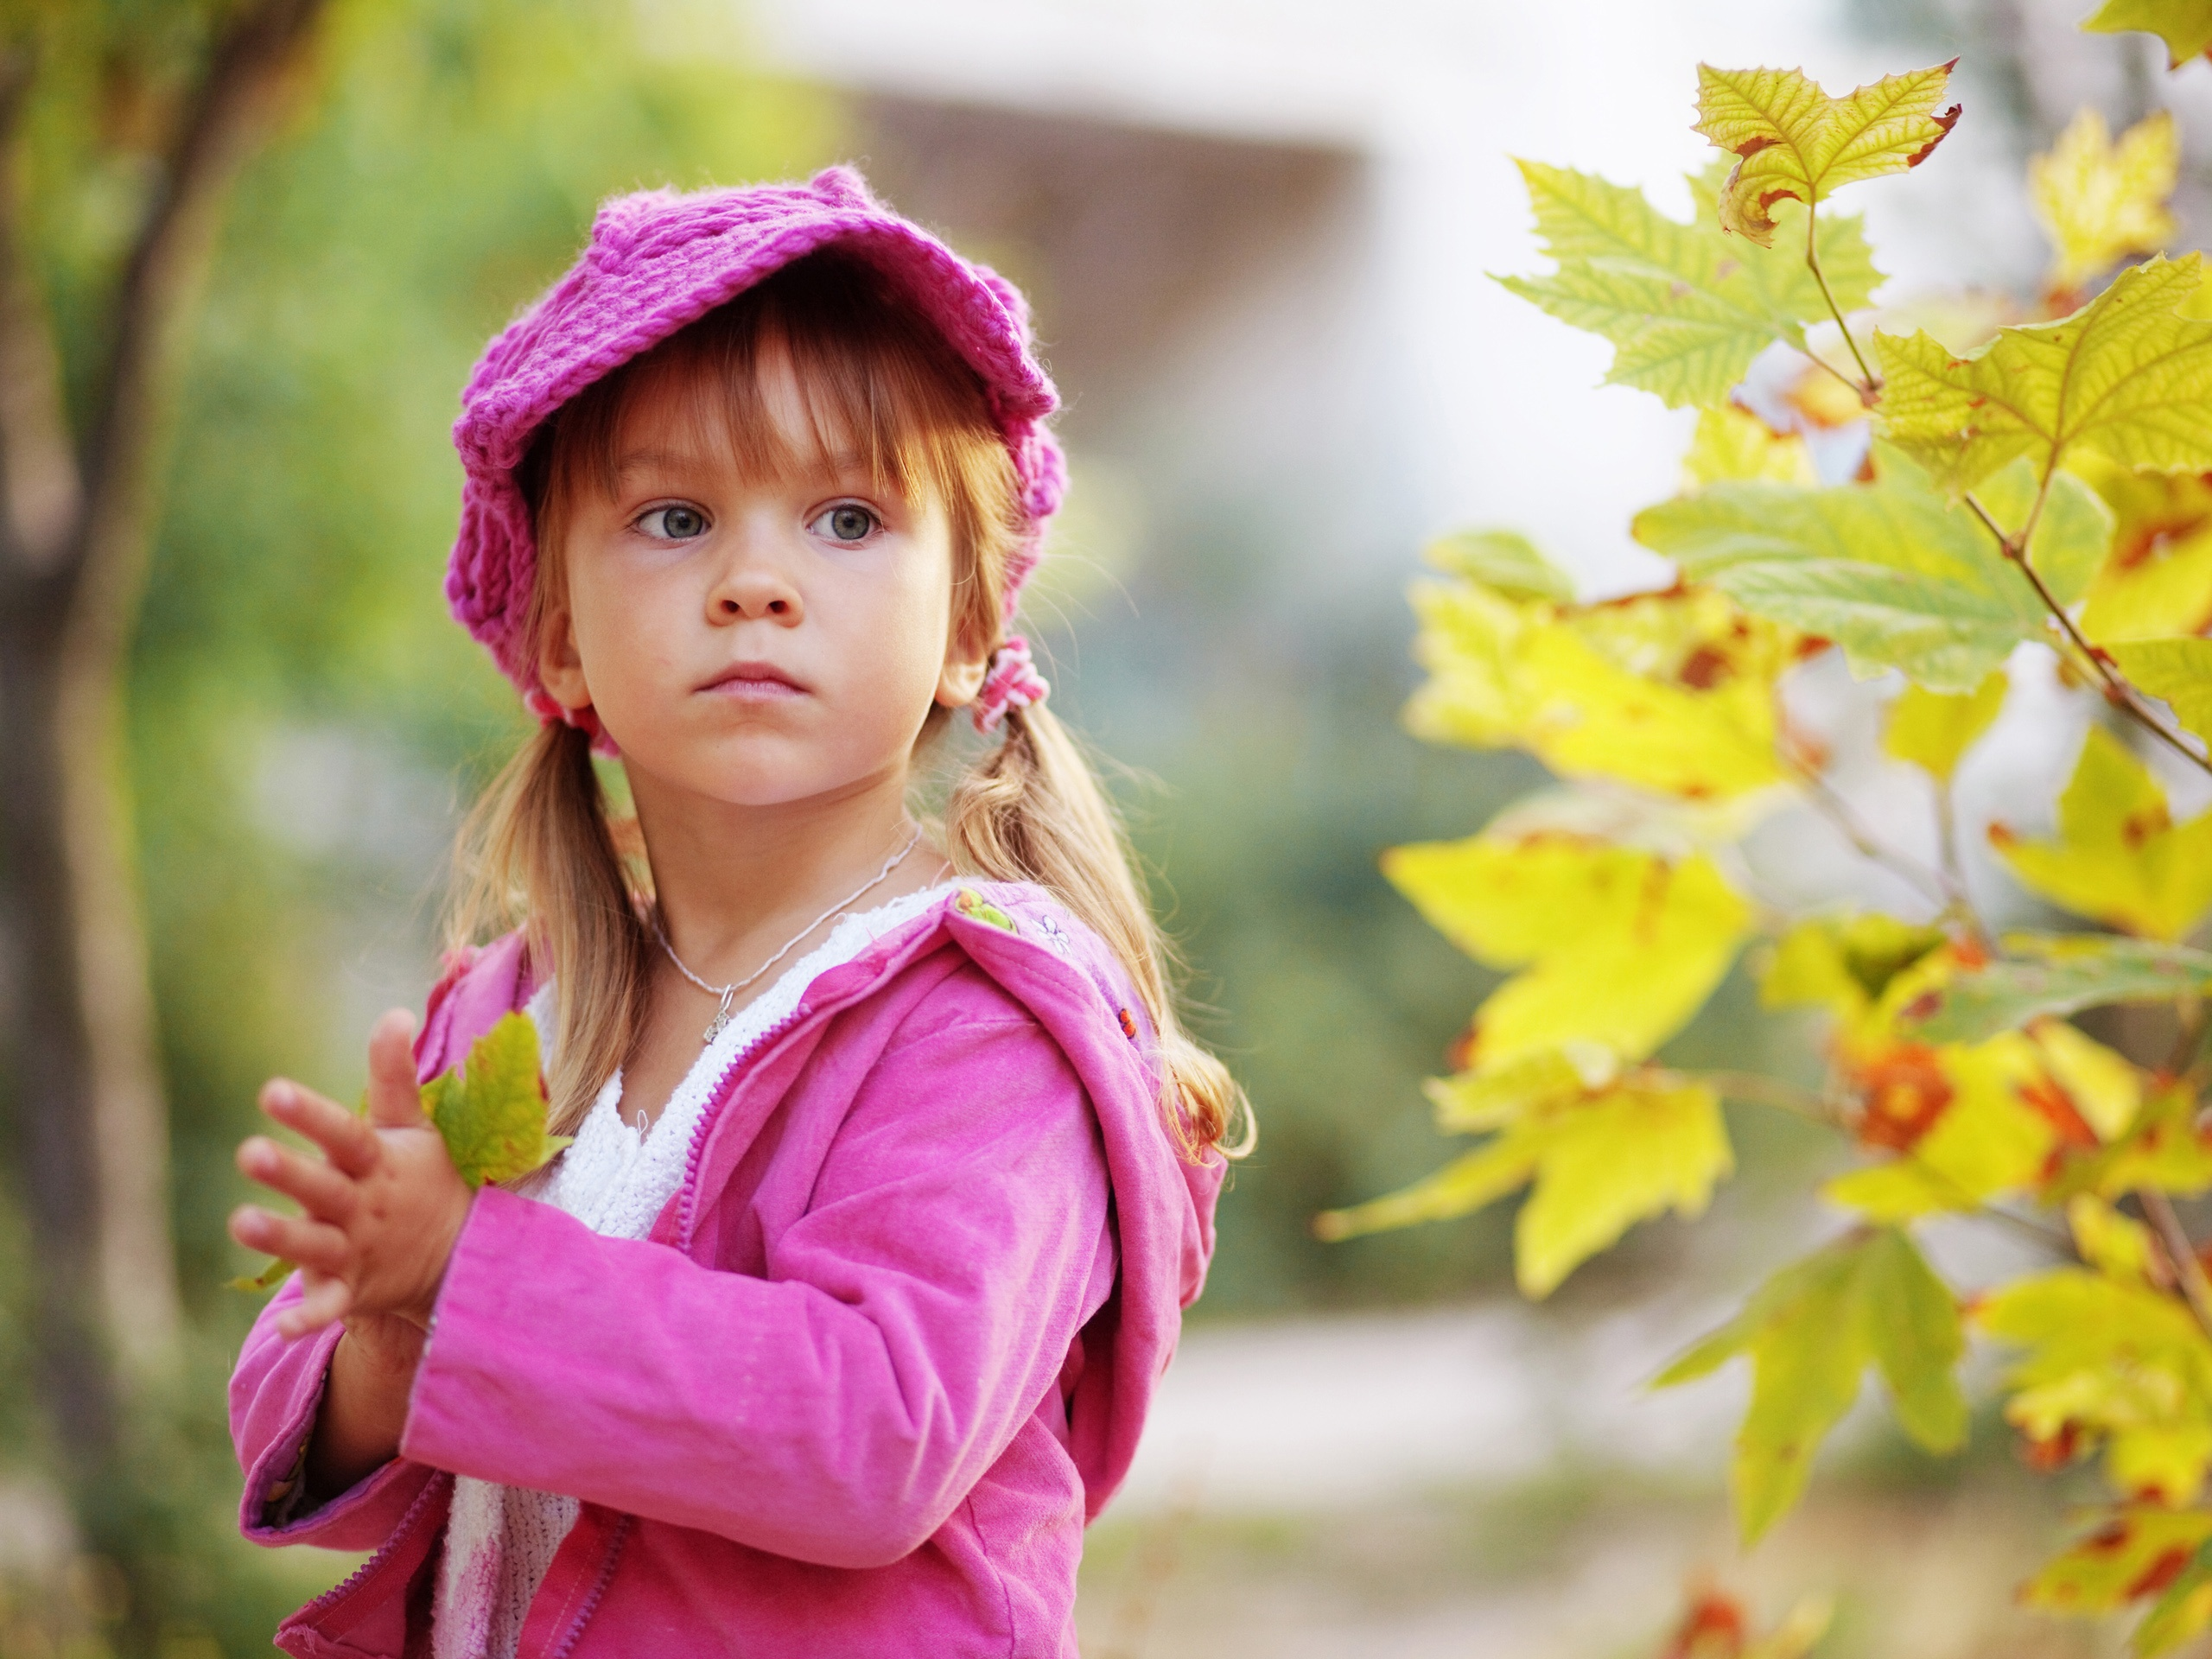 Download Wallpaper 2560x1920 cute little girl holding a maple leaf HD Background